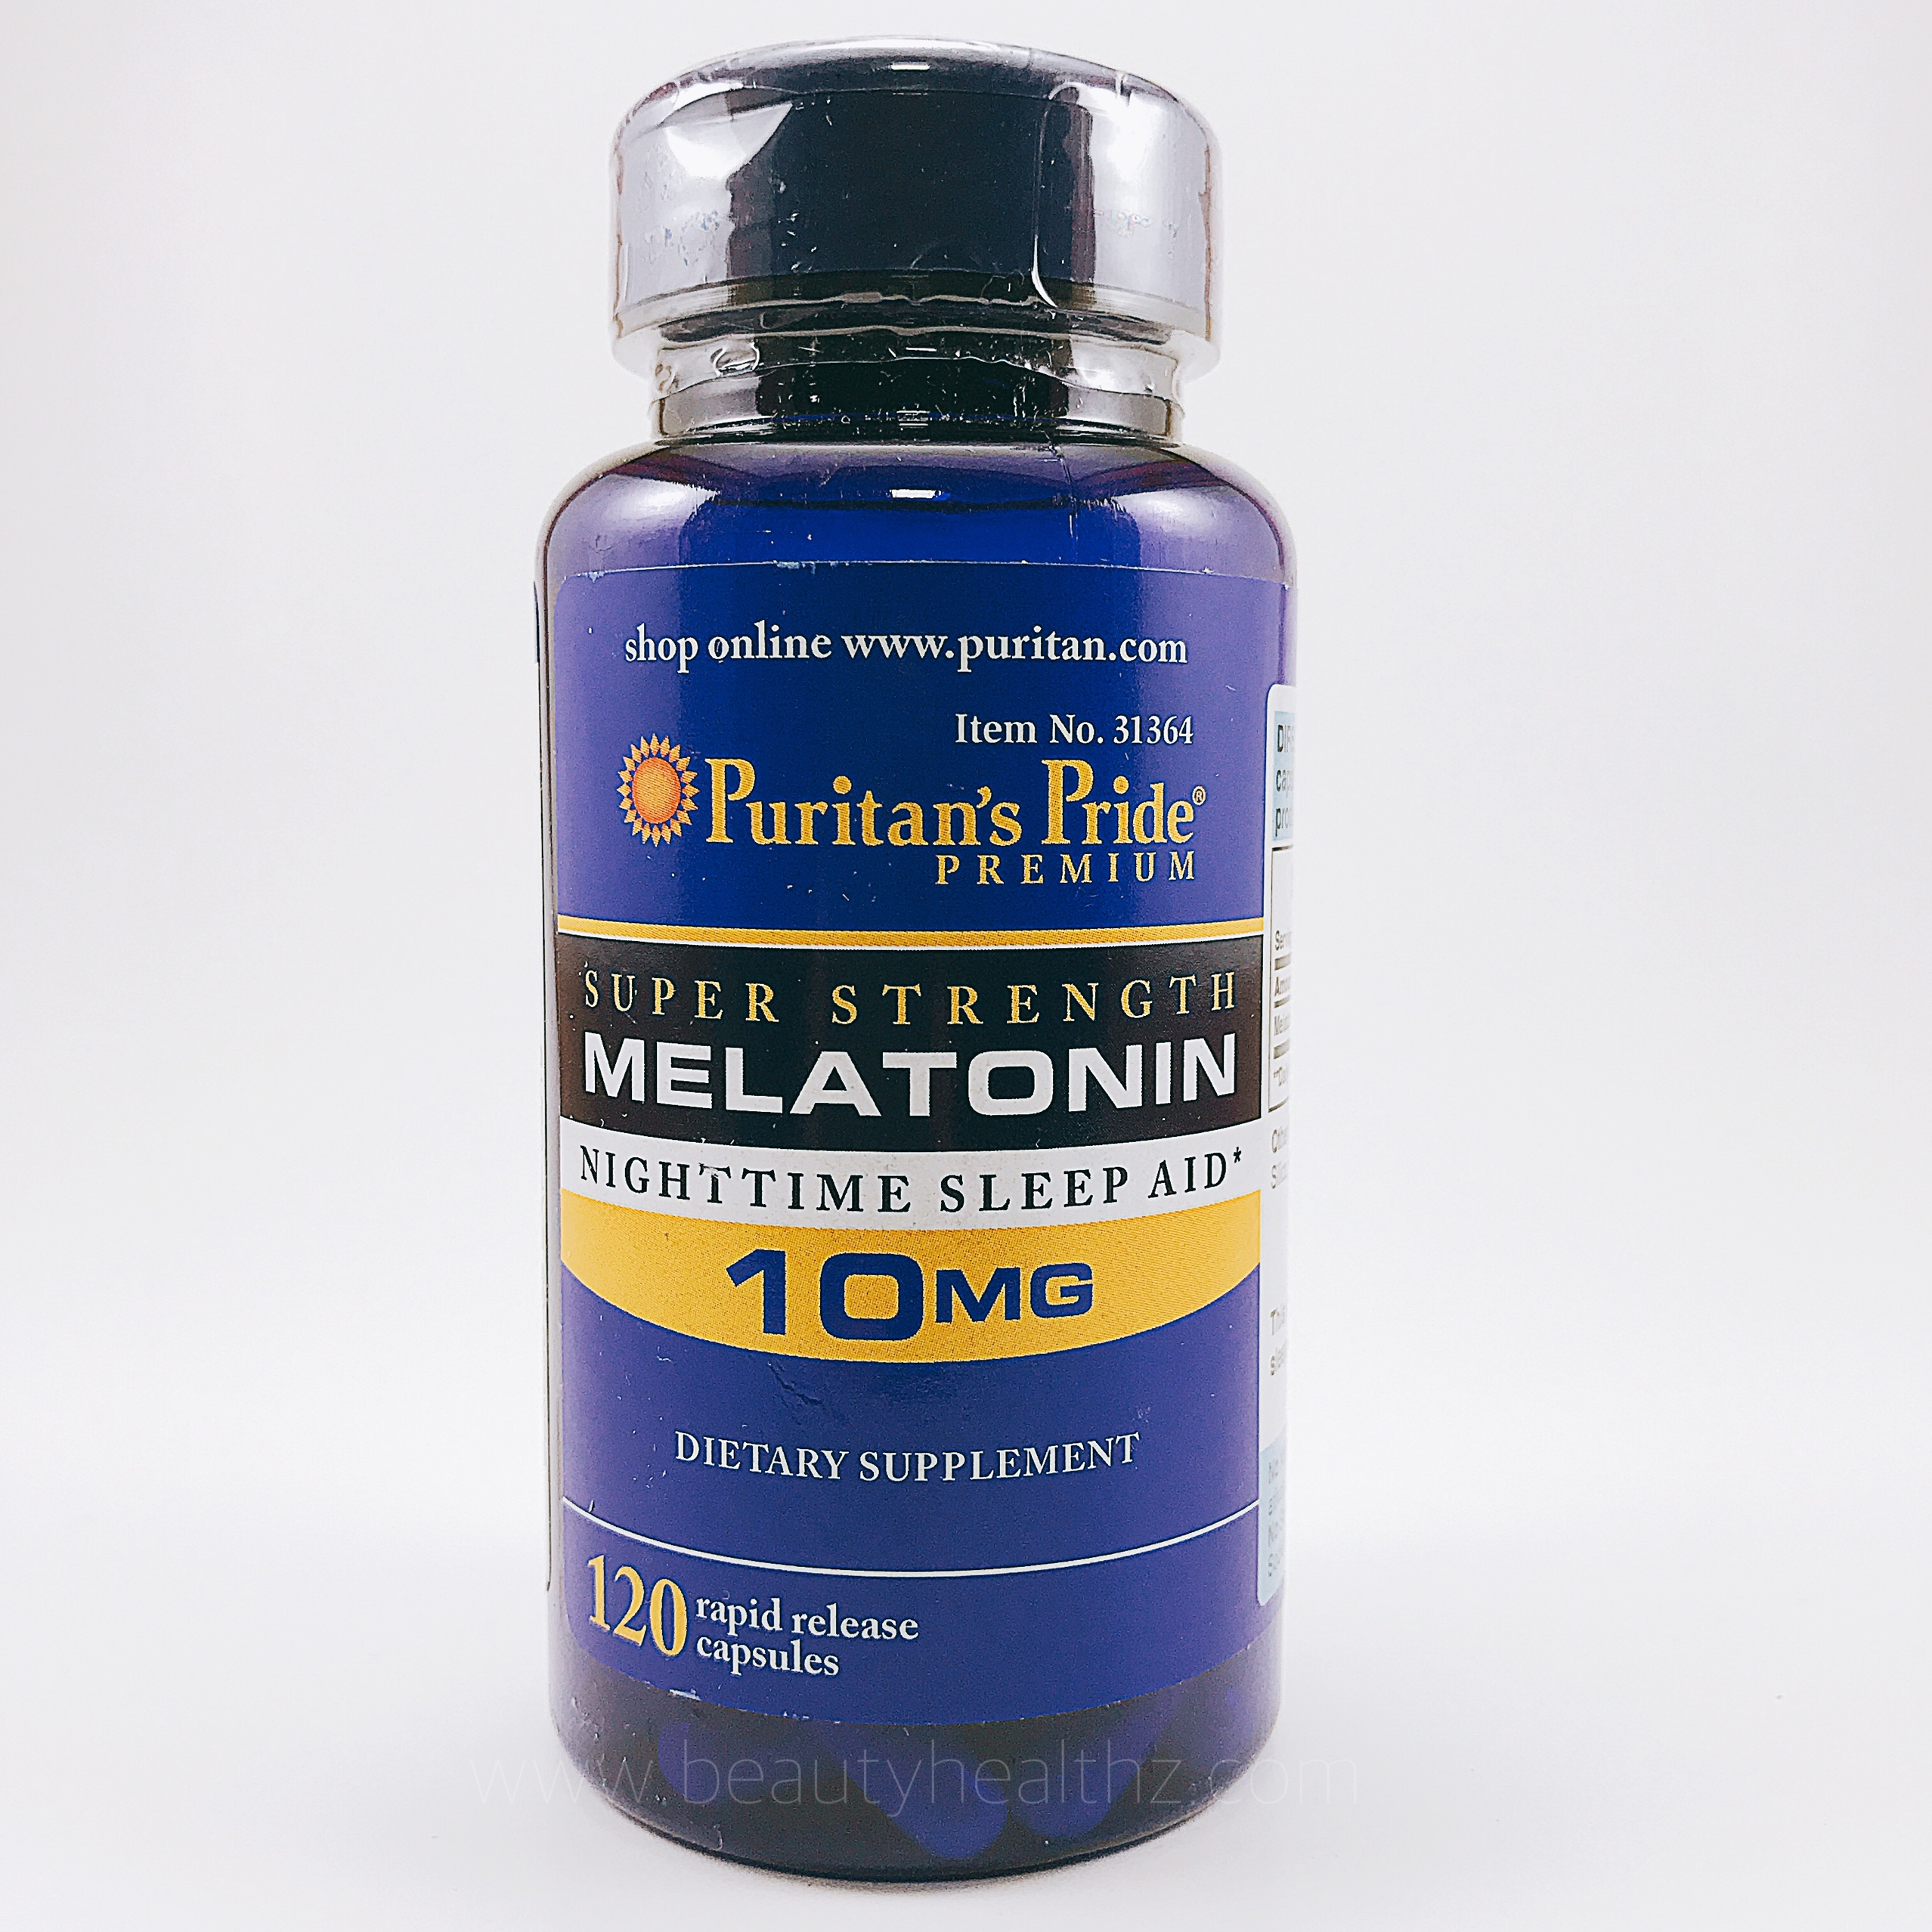 Puritan's Pride, Melatonin 10 mg 120 Capsules